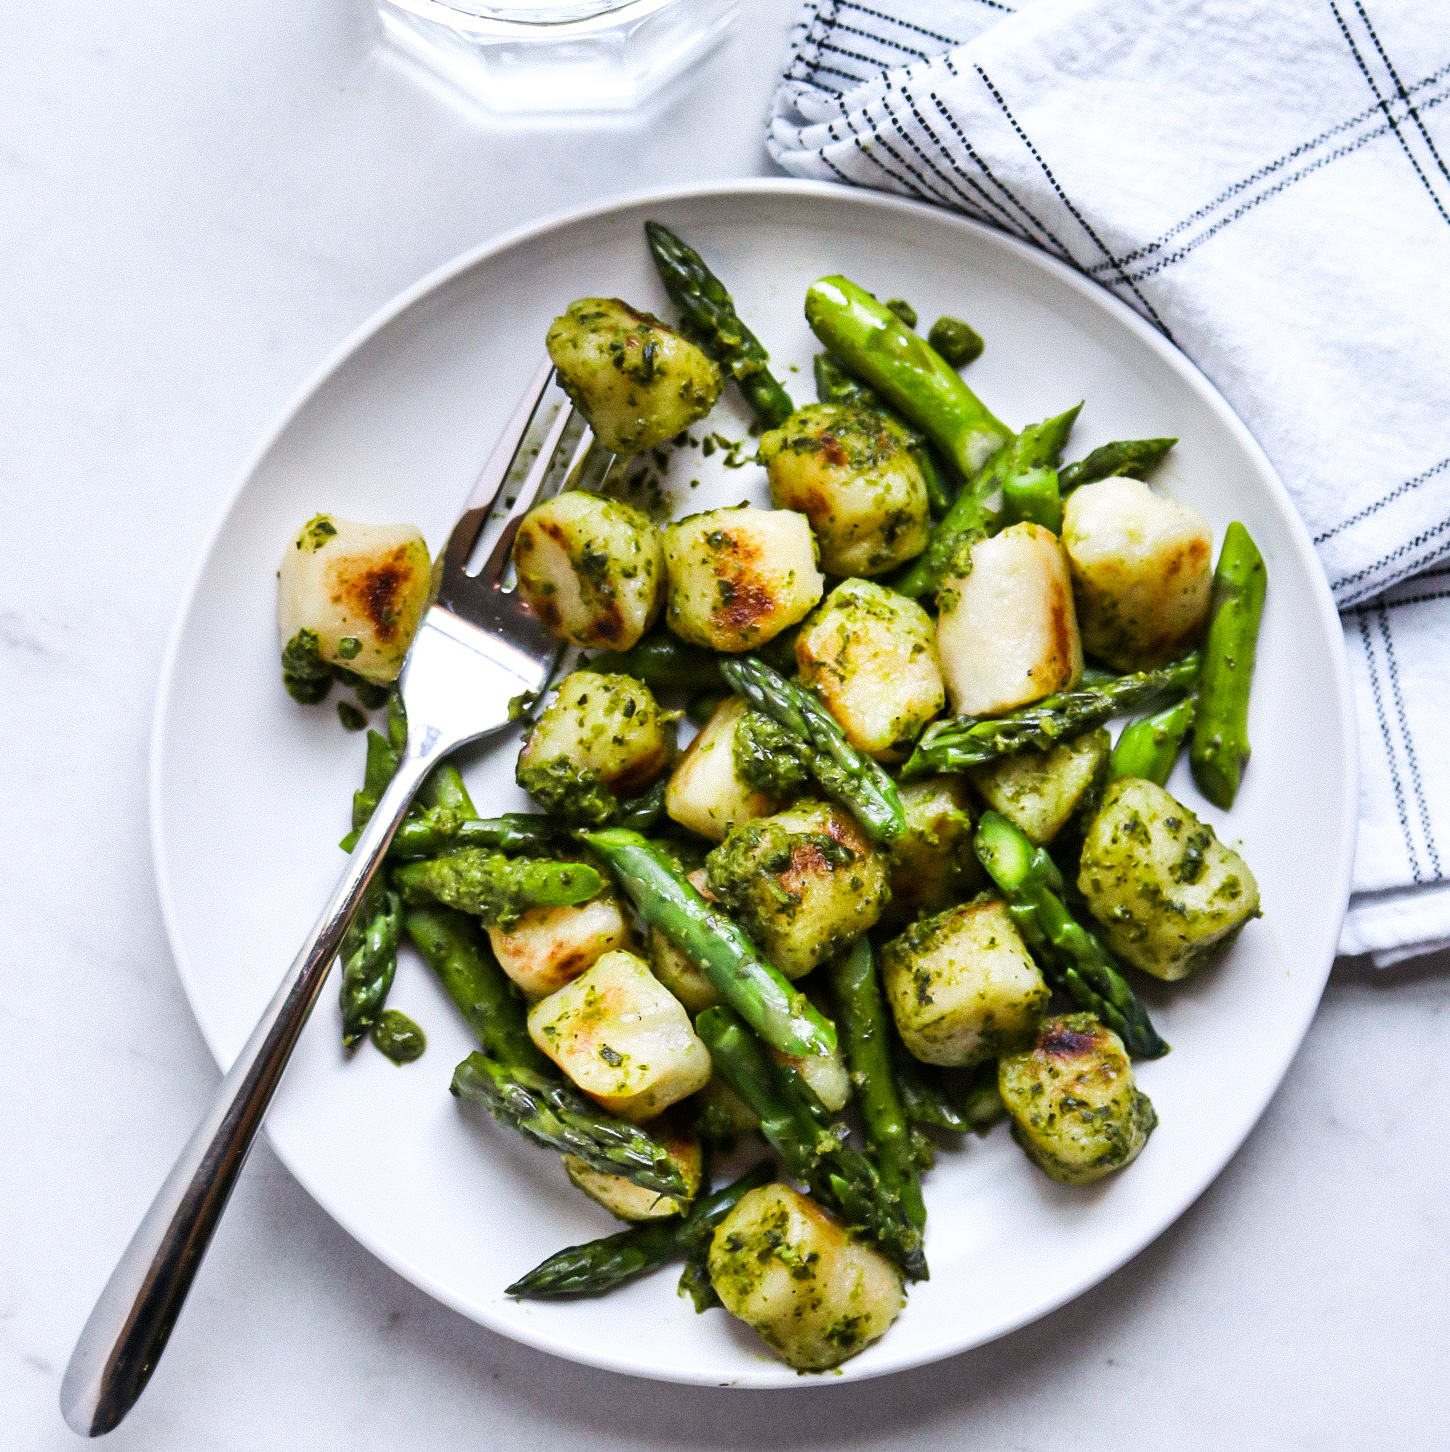 Cauliflower Gnocchi with Asparagus & Pesto